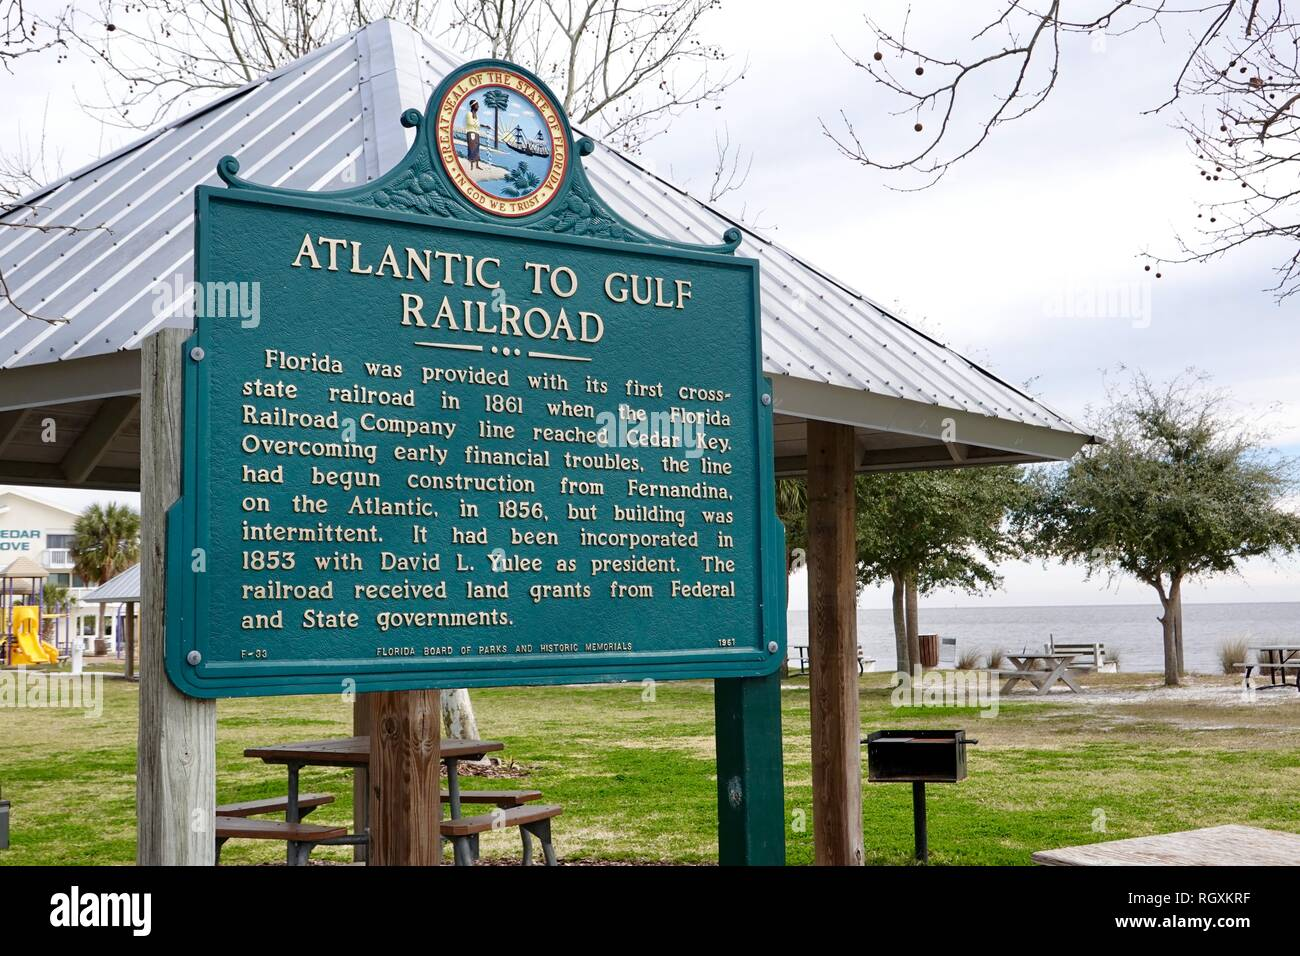 Atlantic to Gulf Railroad, Florida Board of Parks and Historic Memorials, sign detailing the old cross-state railroad to Cedar Key, Florida, USA. Stock Photo